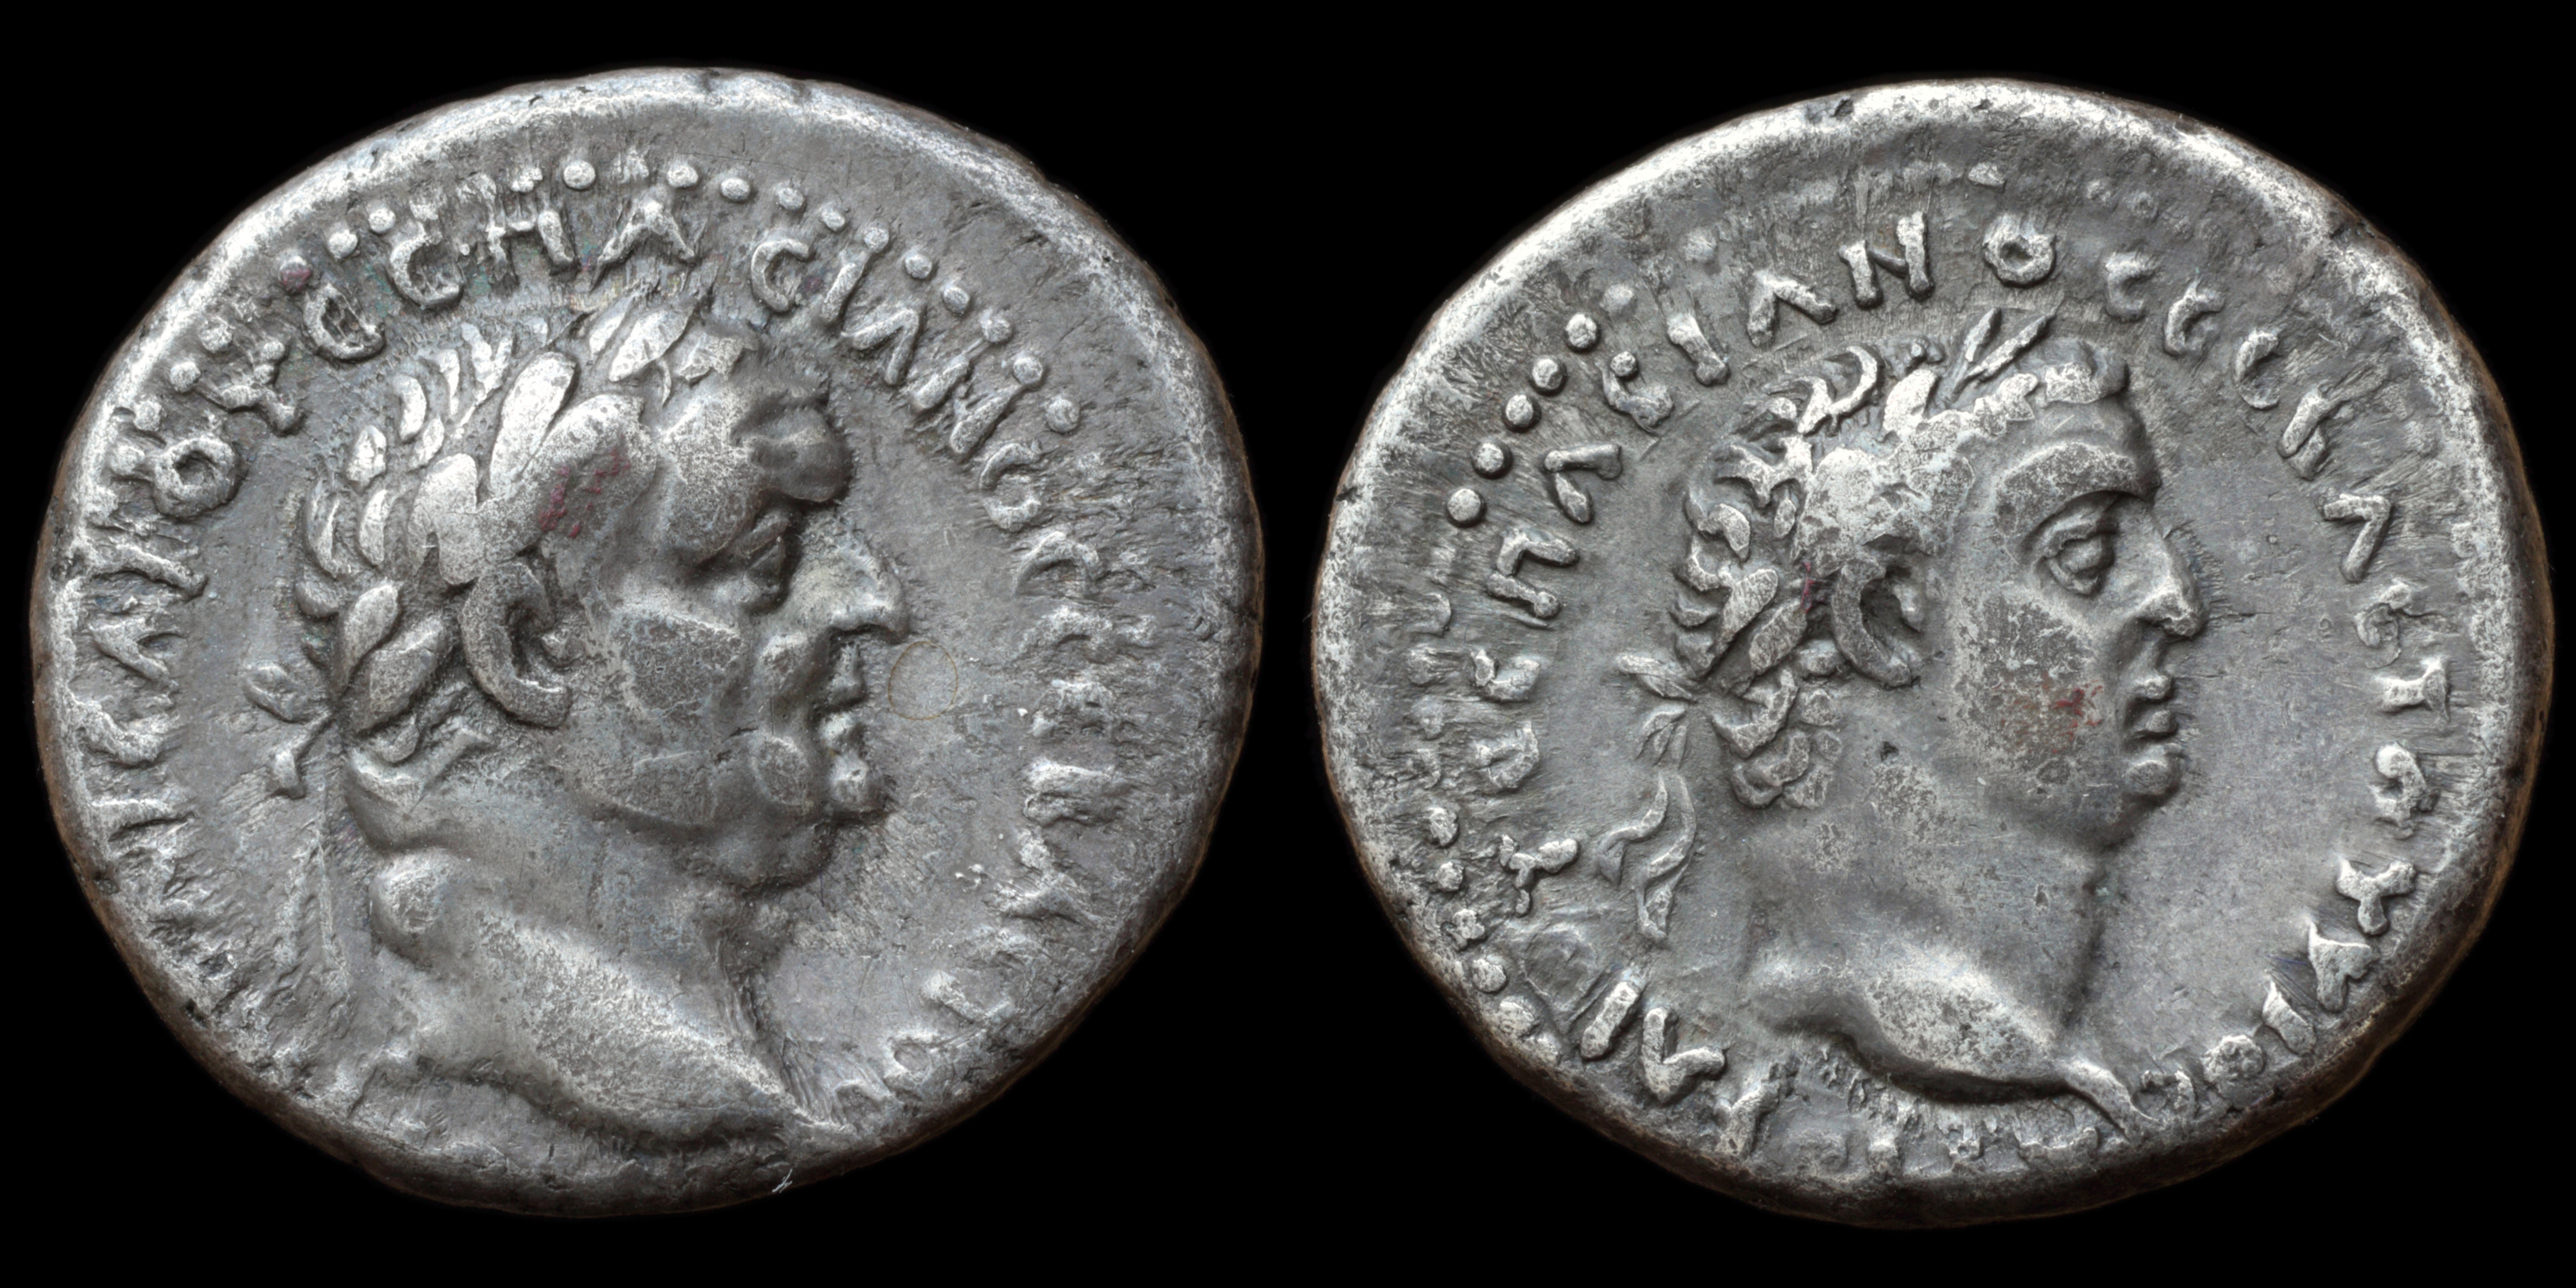 /Files/Images/Coinsite/CoinDB/1637_Vespasian_Titus_Caesarea.jpg